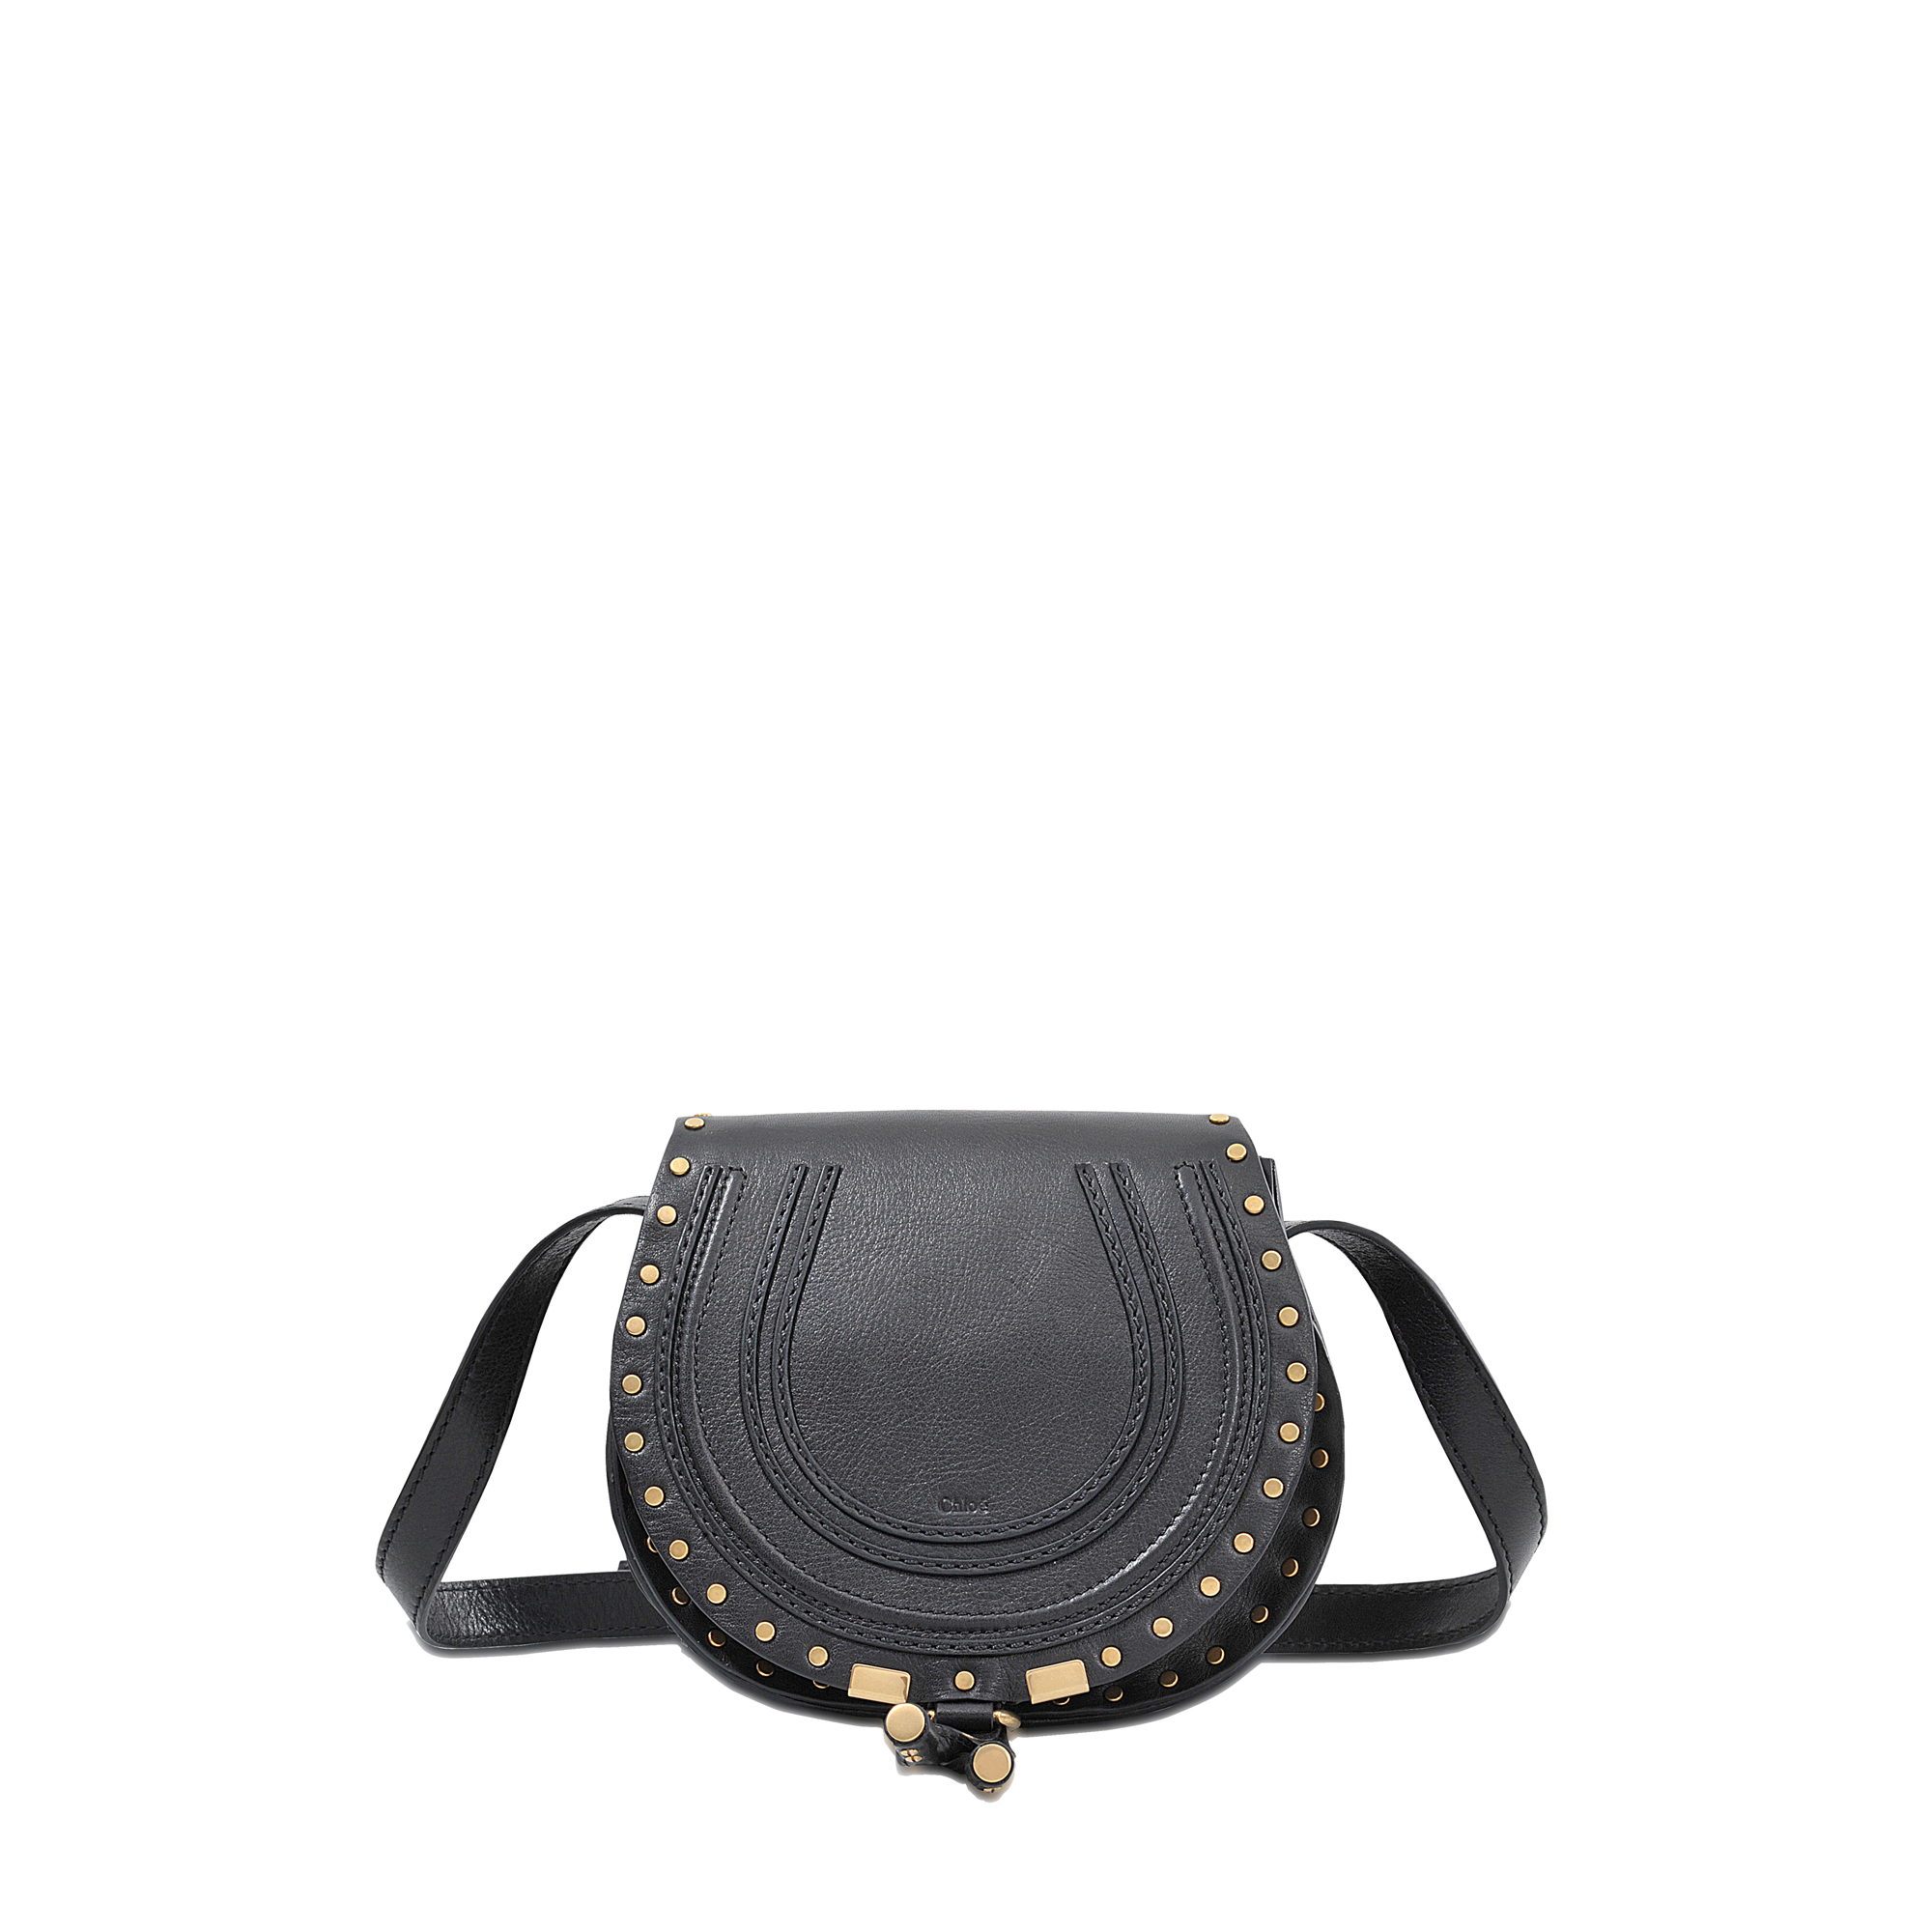 chlor bag replica - chloe suede small marcie saddle bag, cheap chloe handbags